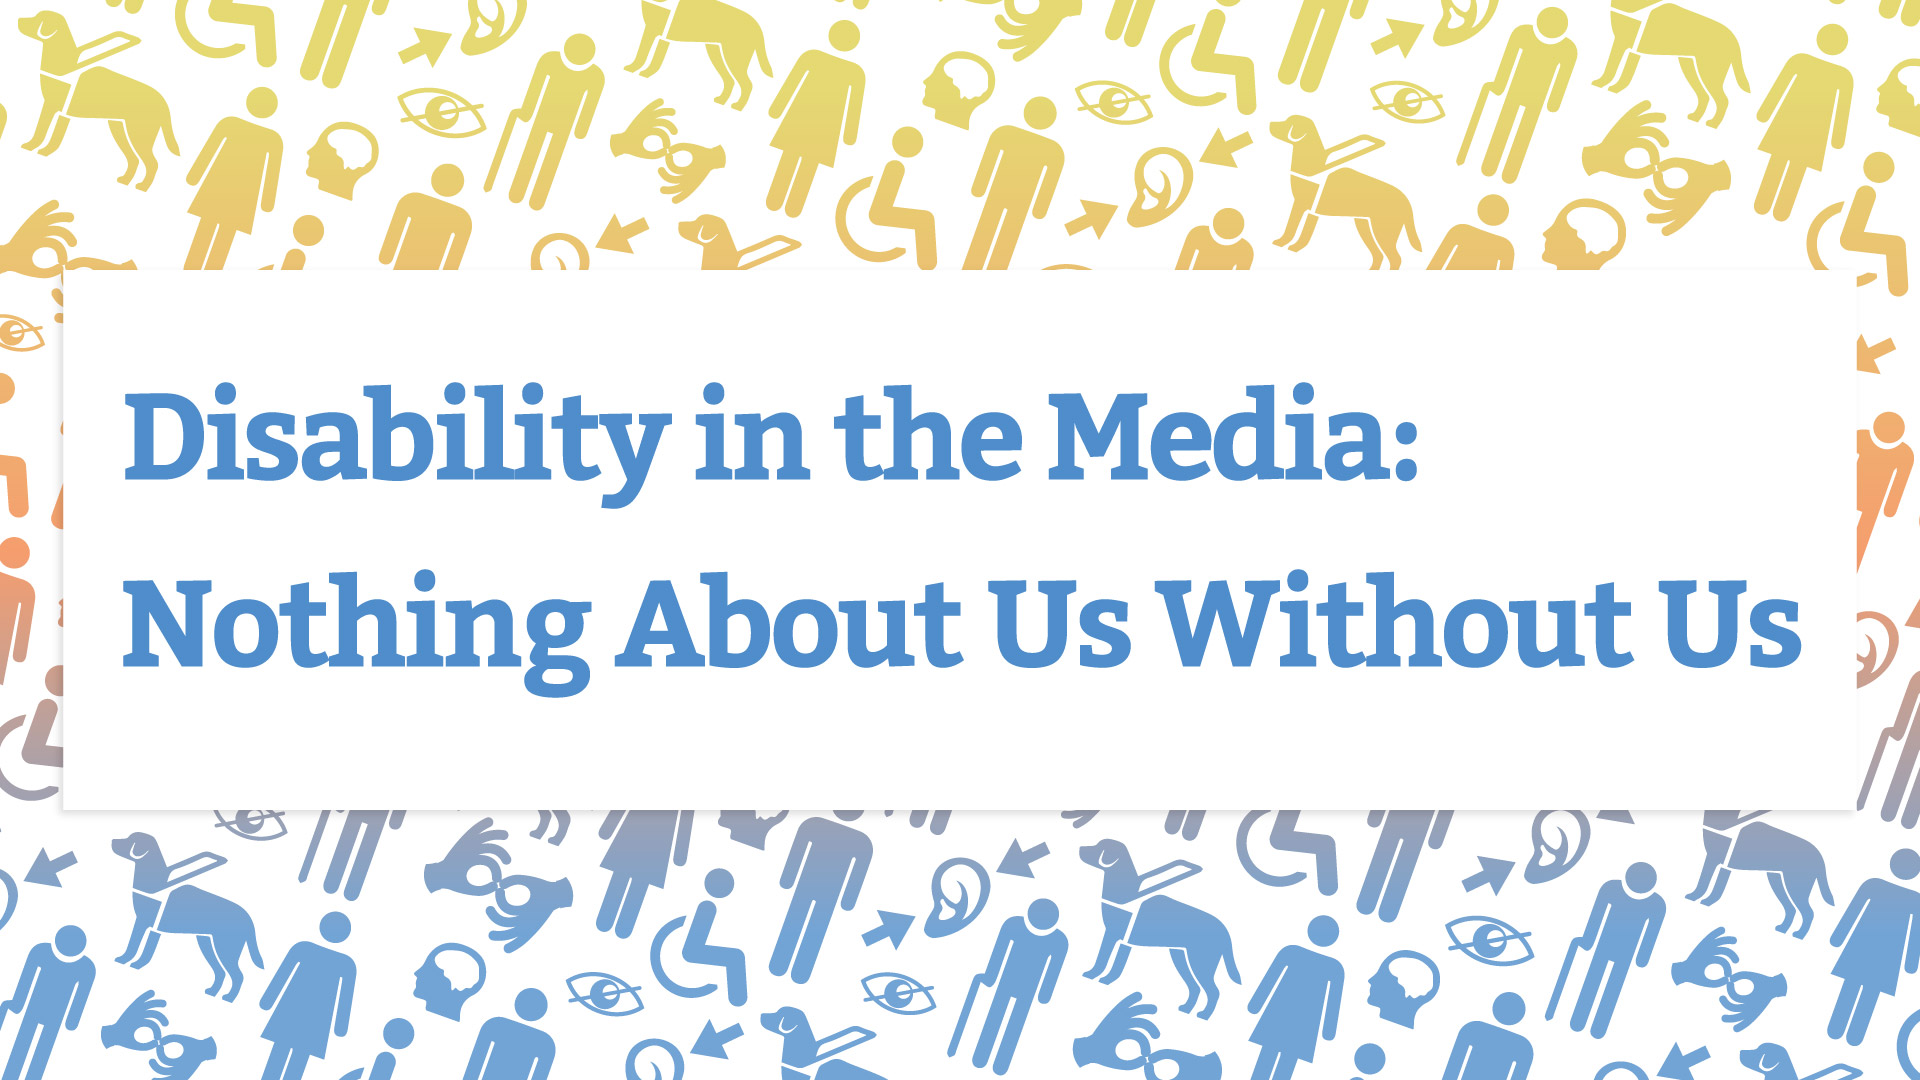 Disability in the Media: Nothing About Us Without Us